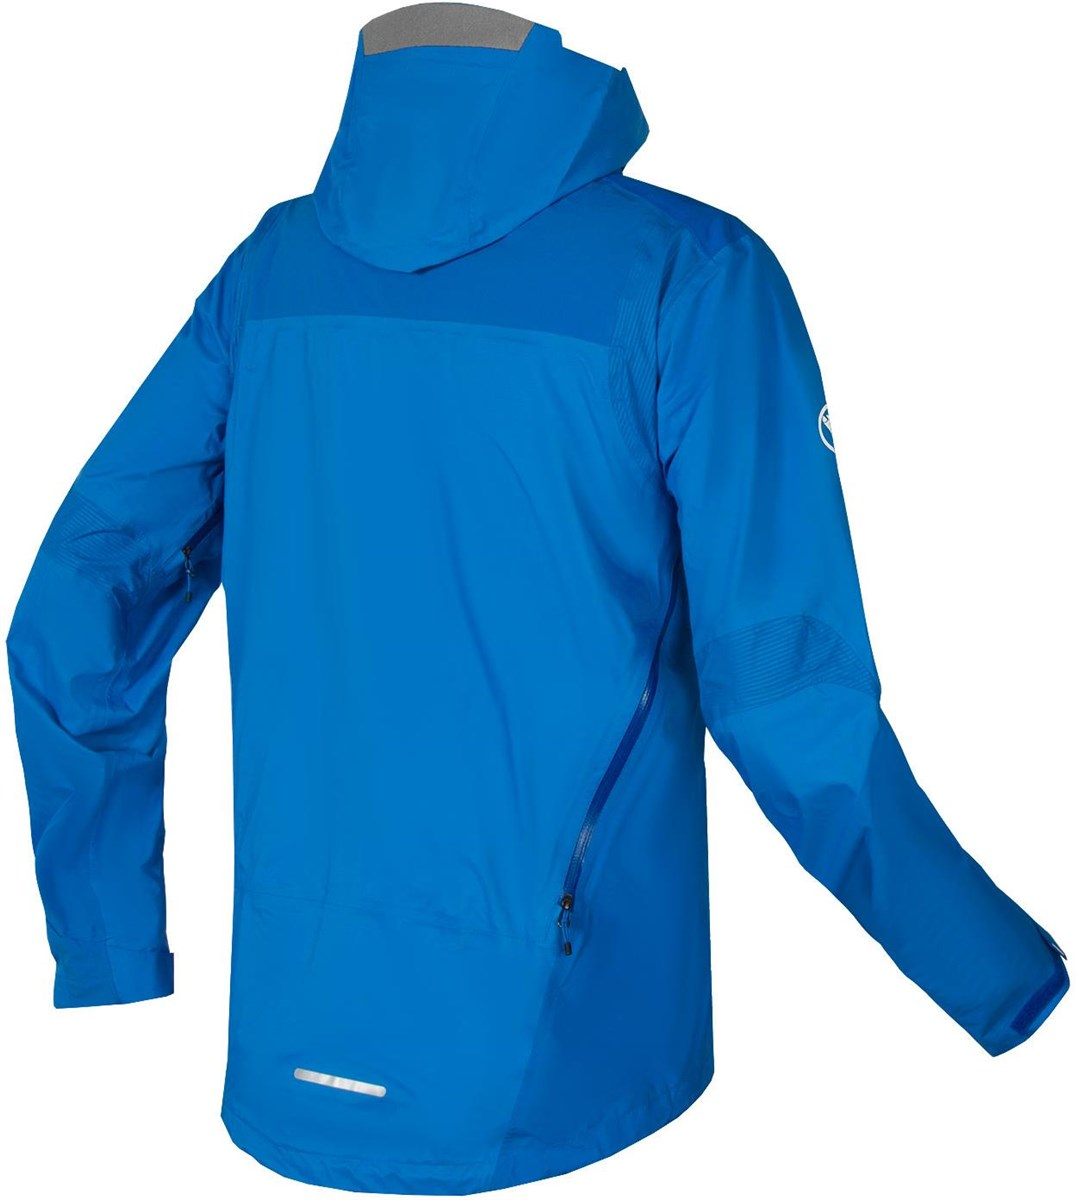 Endura MT500 Waterproof Cycling Jacket